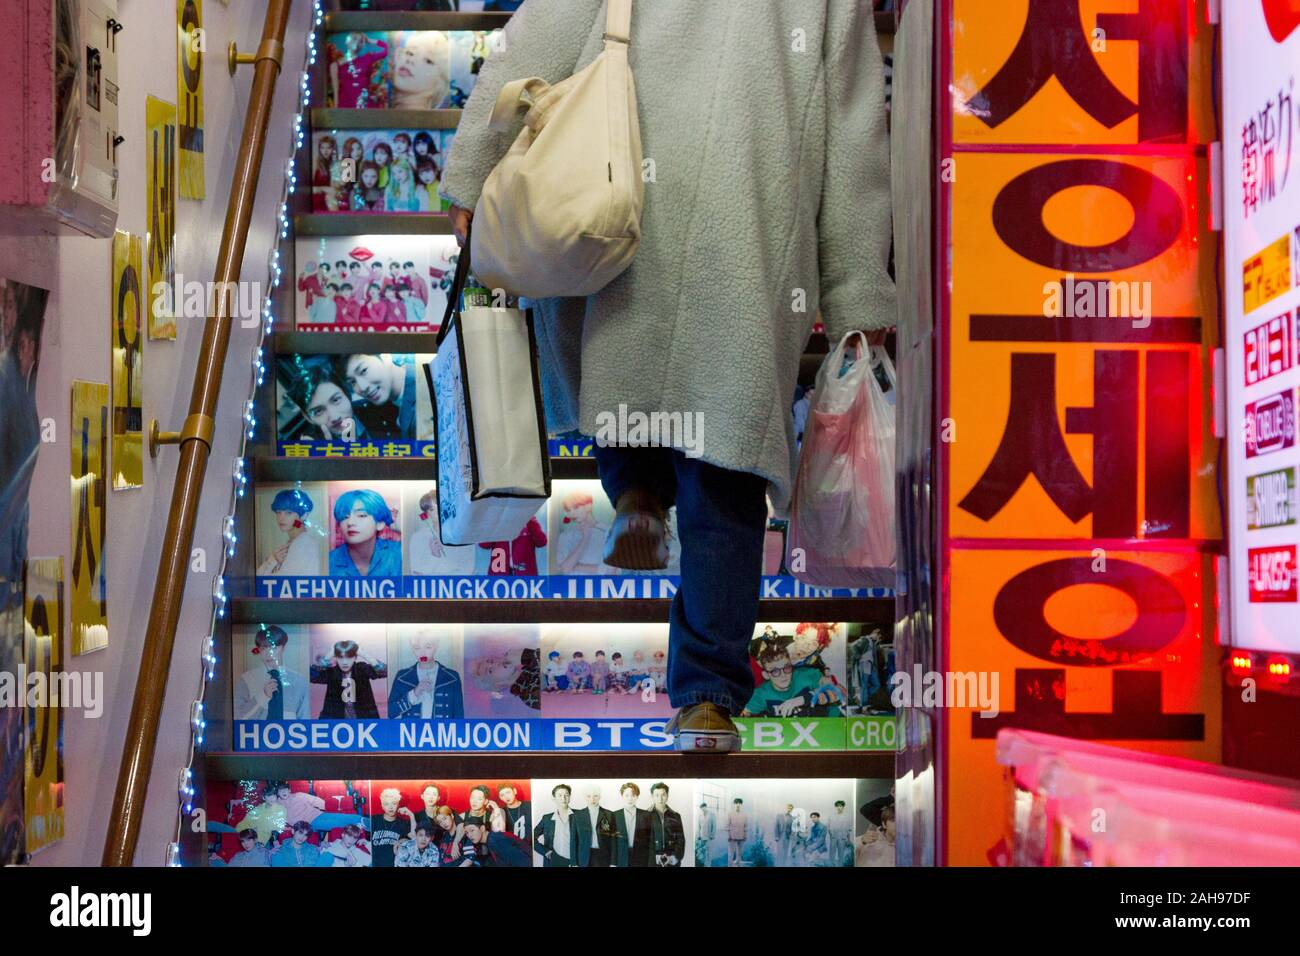 A woman carrying shopping bags climbs stairs with pictures of Korean idols and celebrities on them in a shop in Shin-Okubo, Shinjuku, Tokyo, Japan. Stock Photo